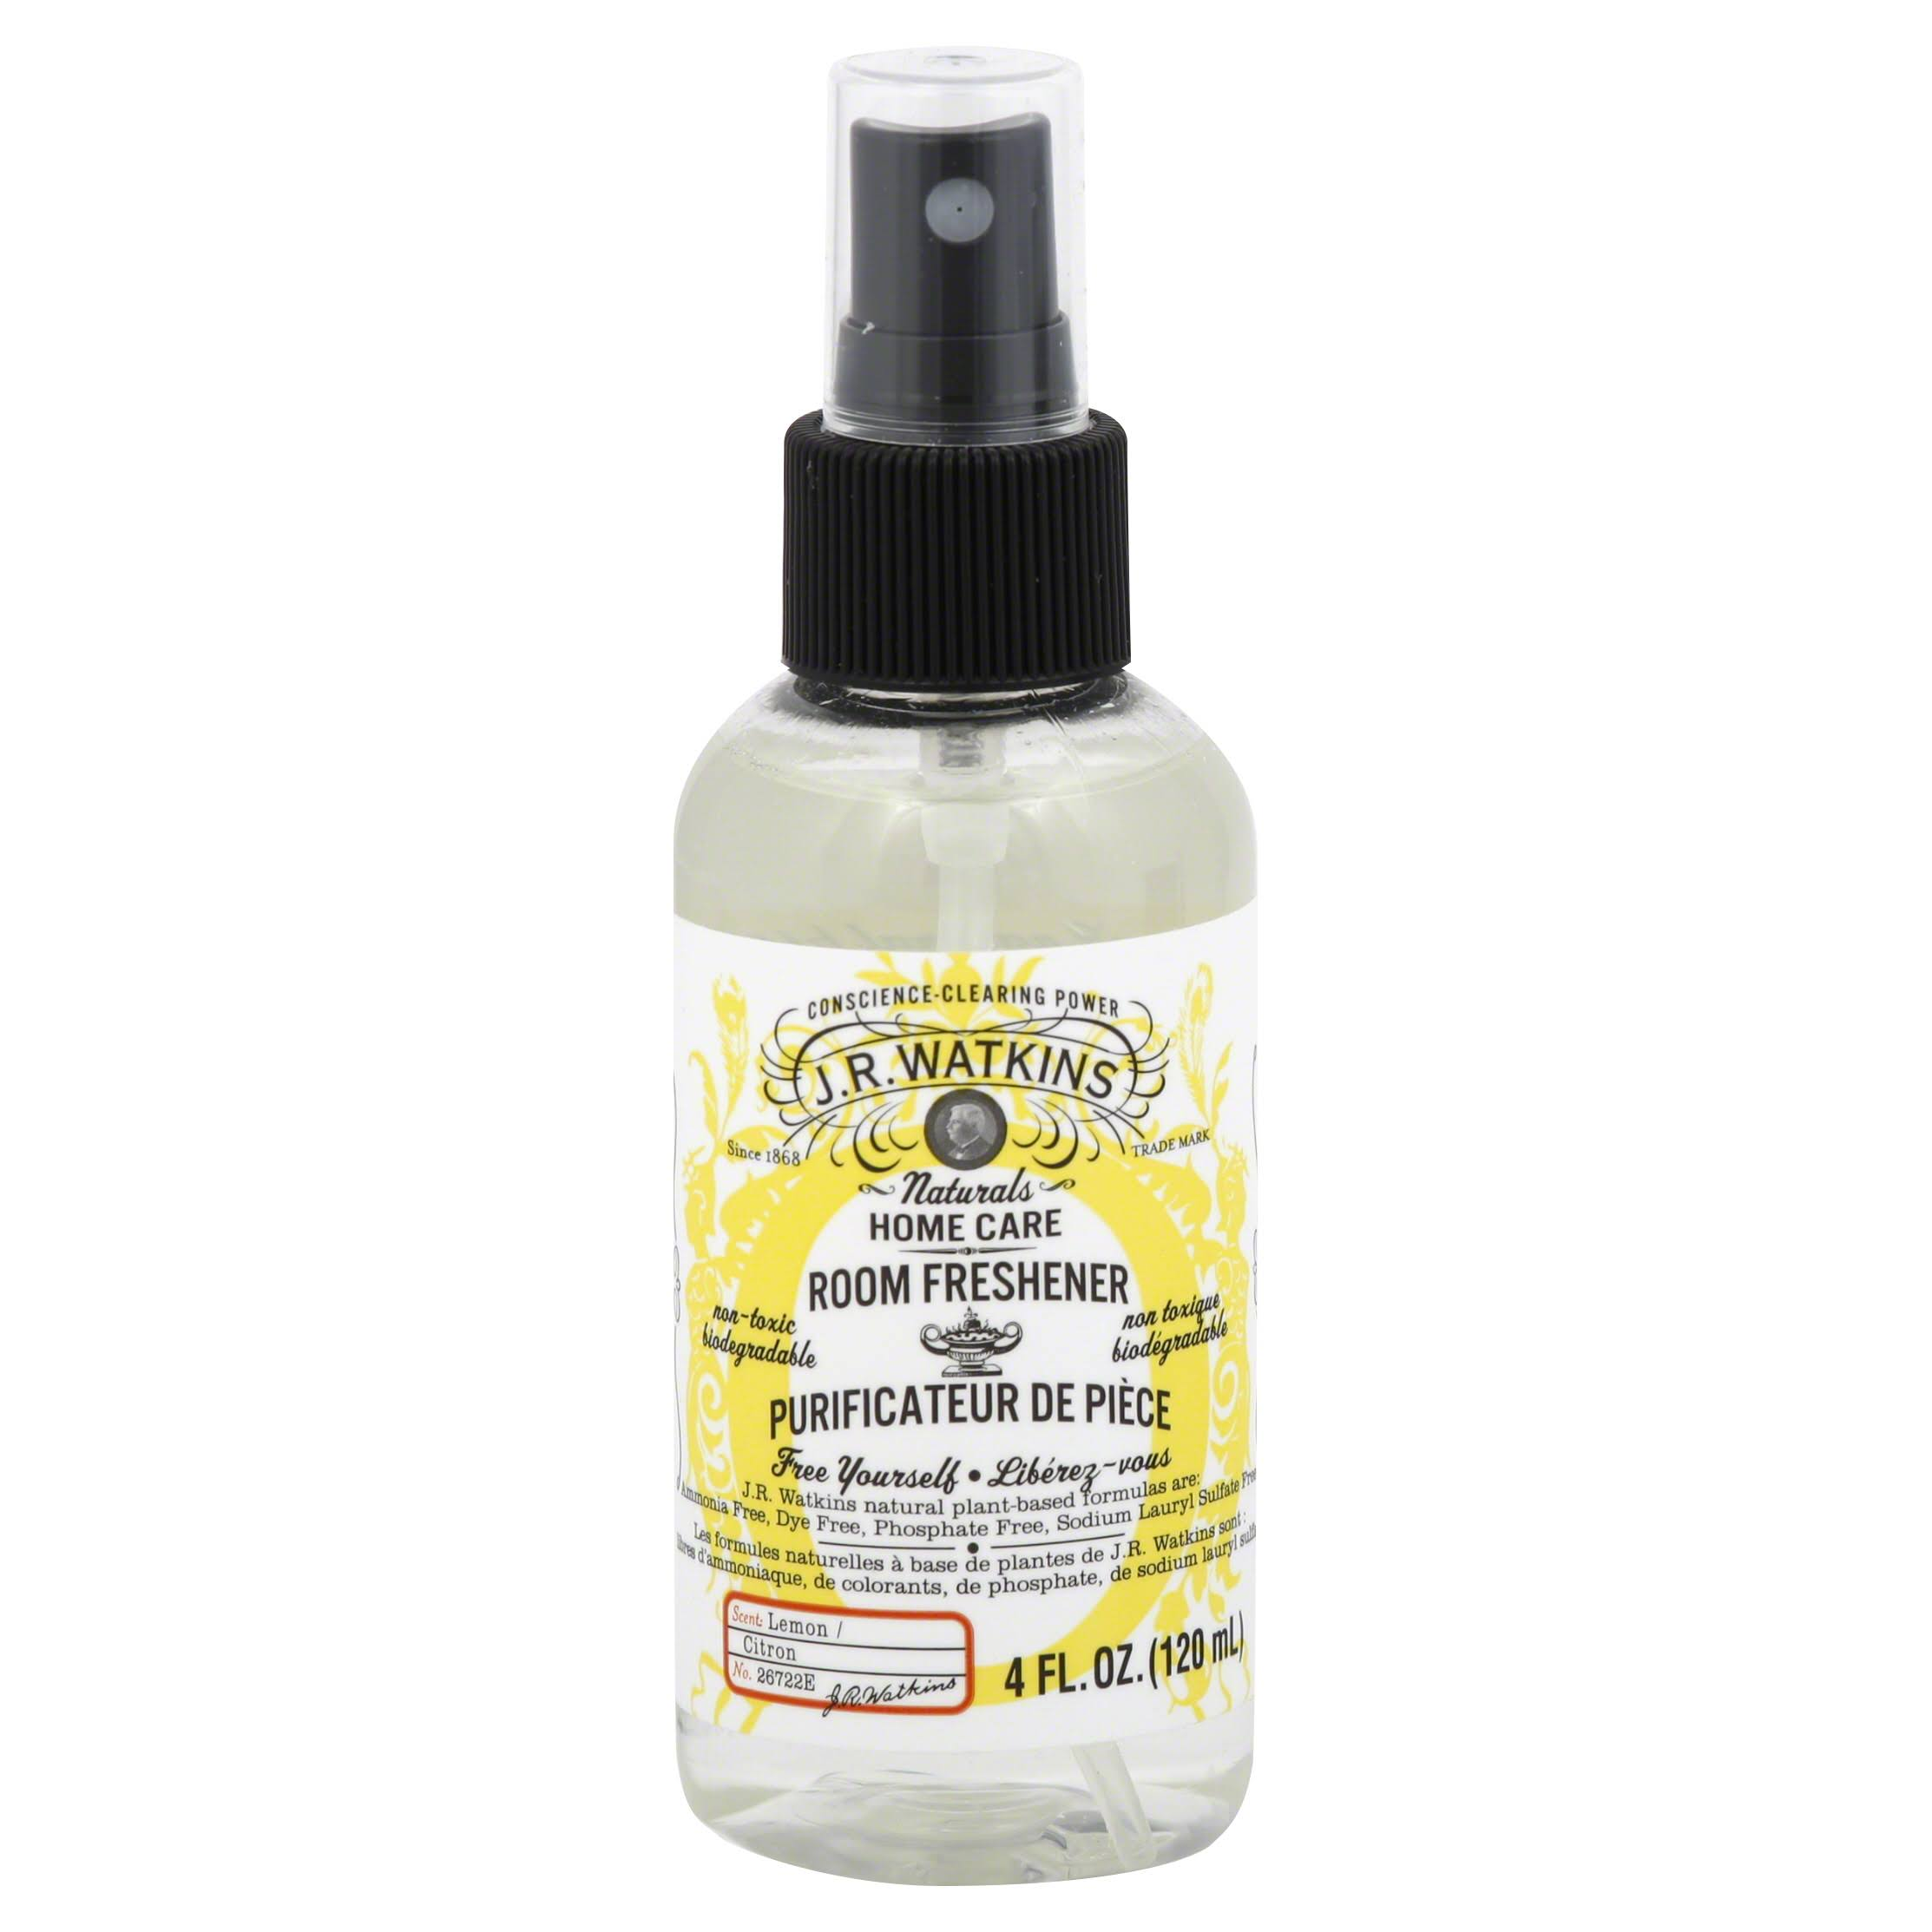 J.R. Watkins Lemon Room Freshener Spray - 4 oz